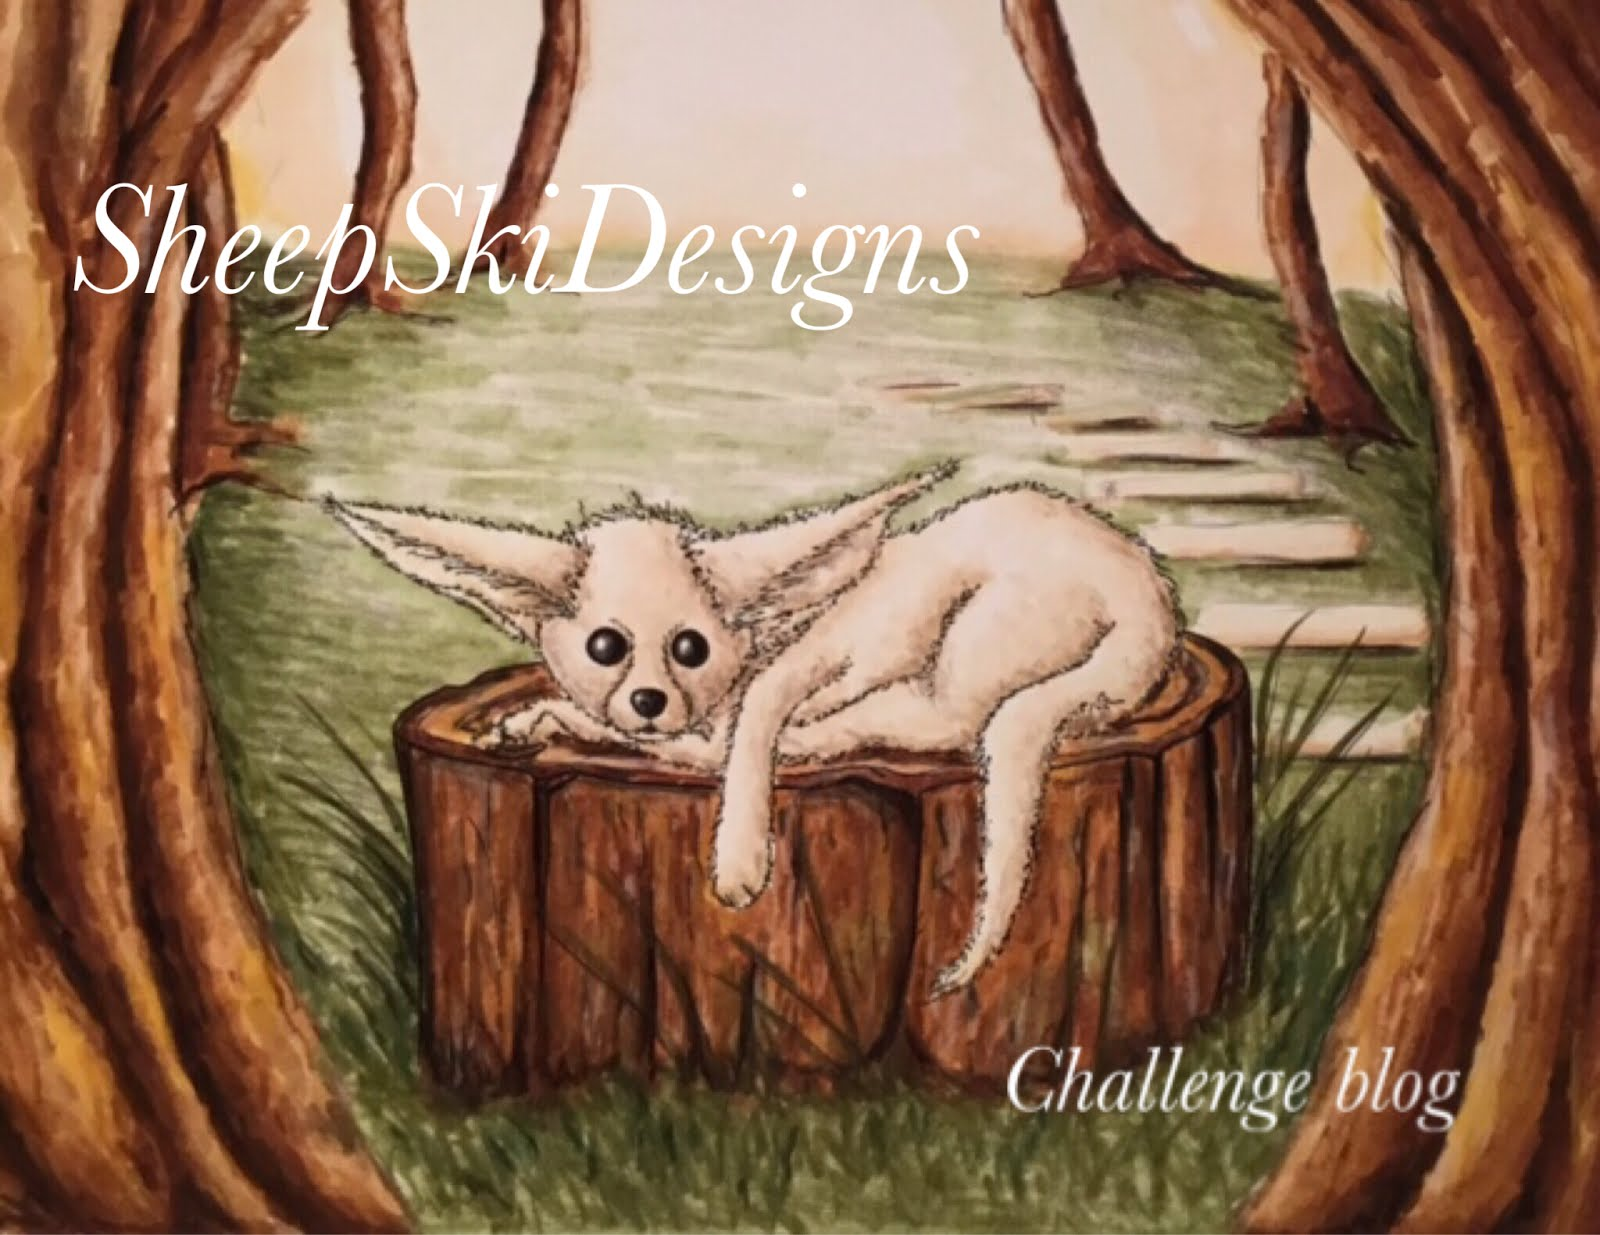 SheepSki-Designs-Callenges